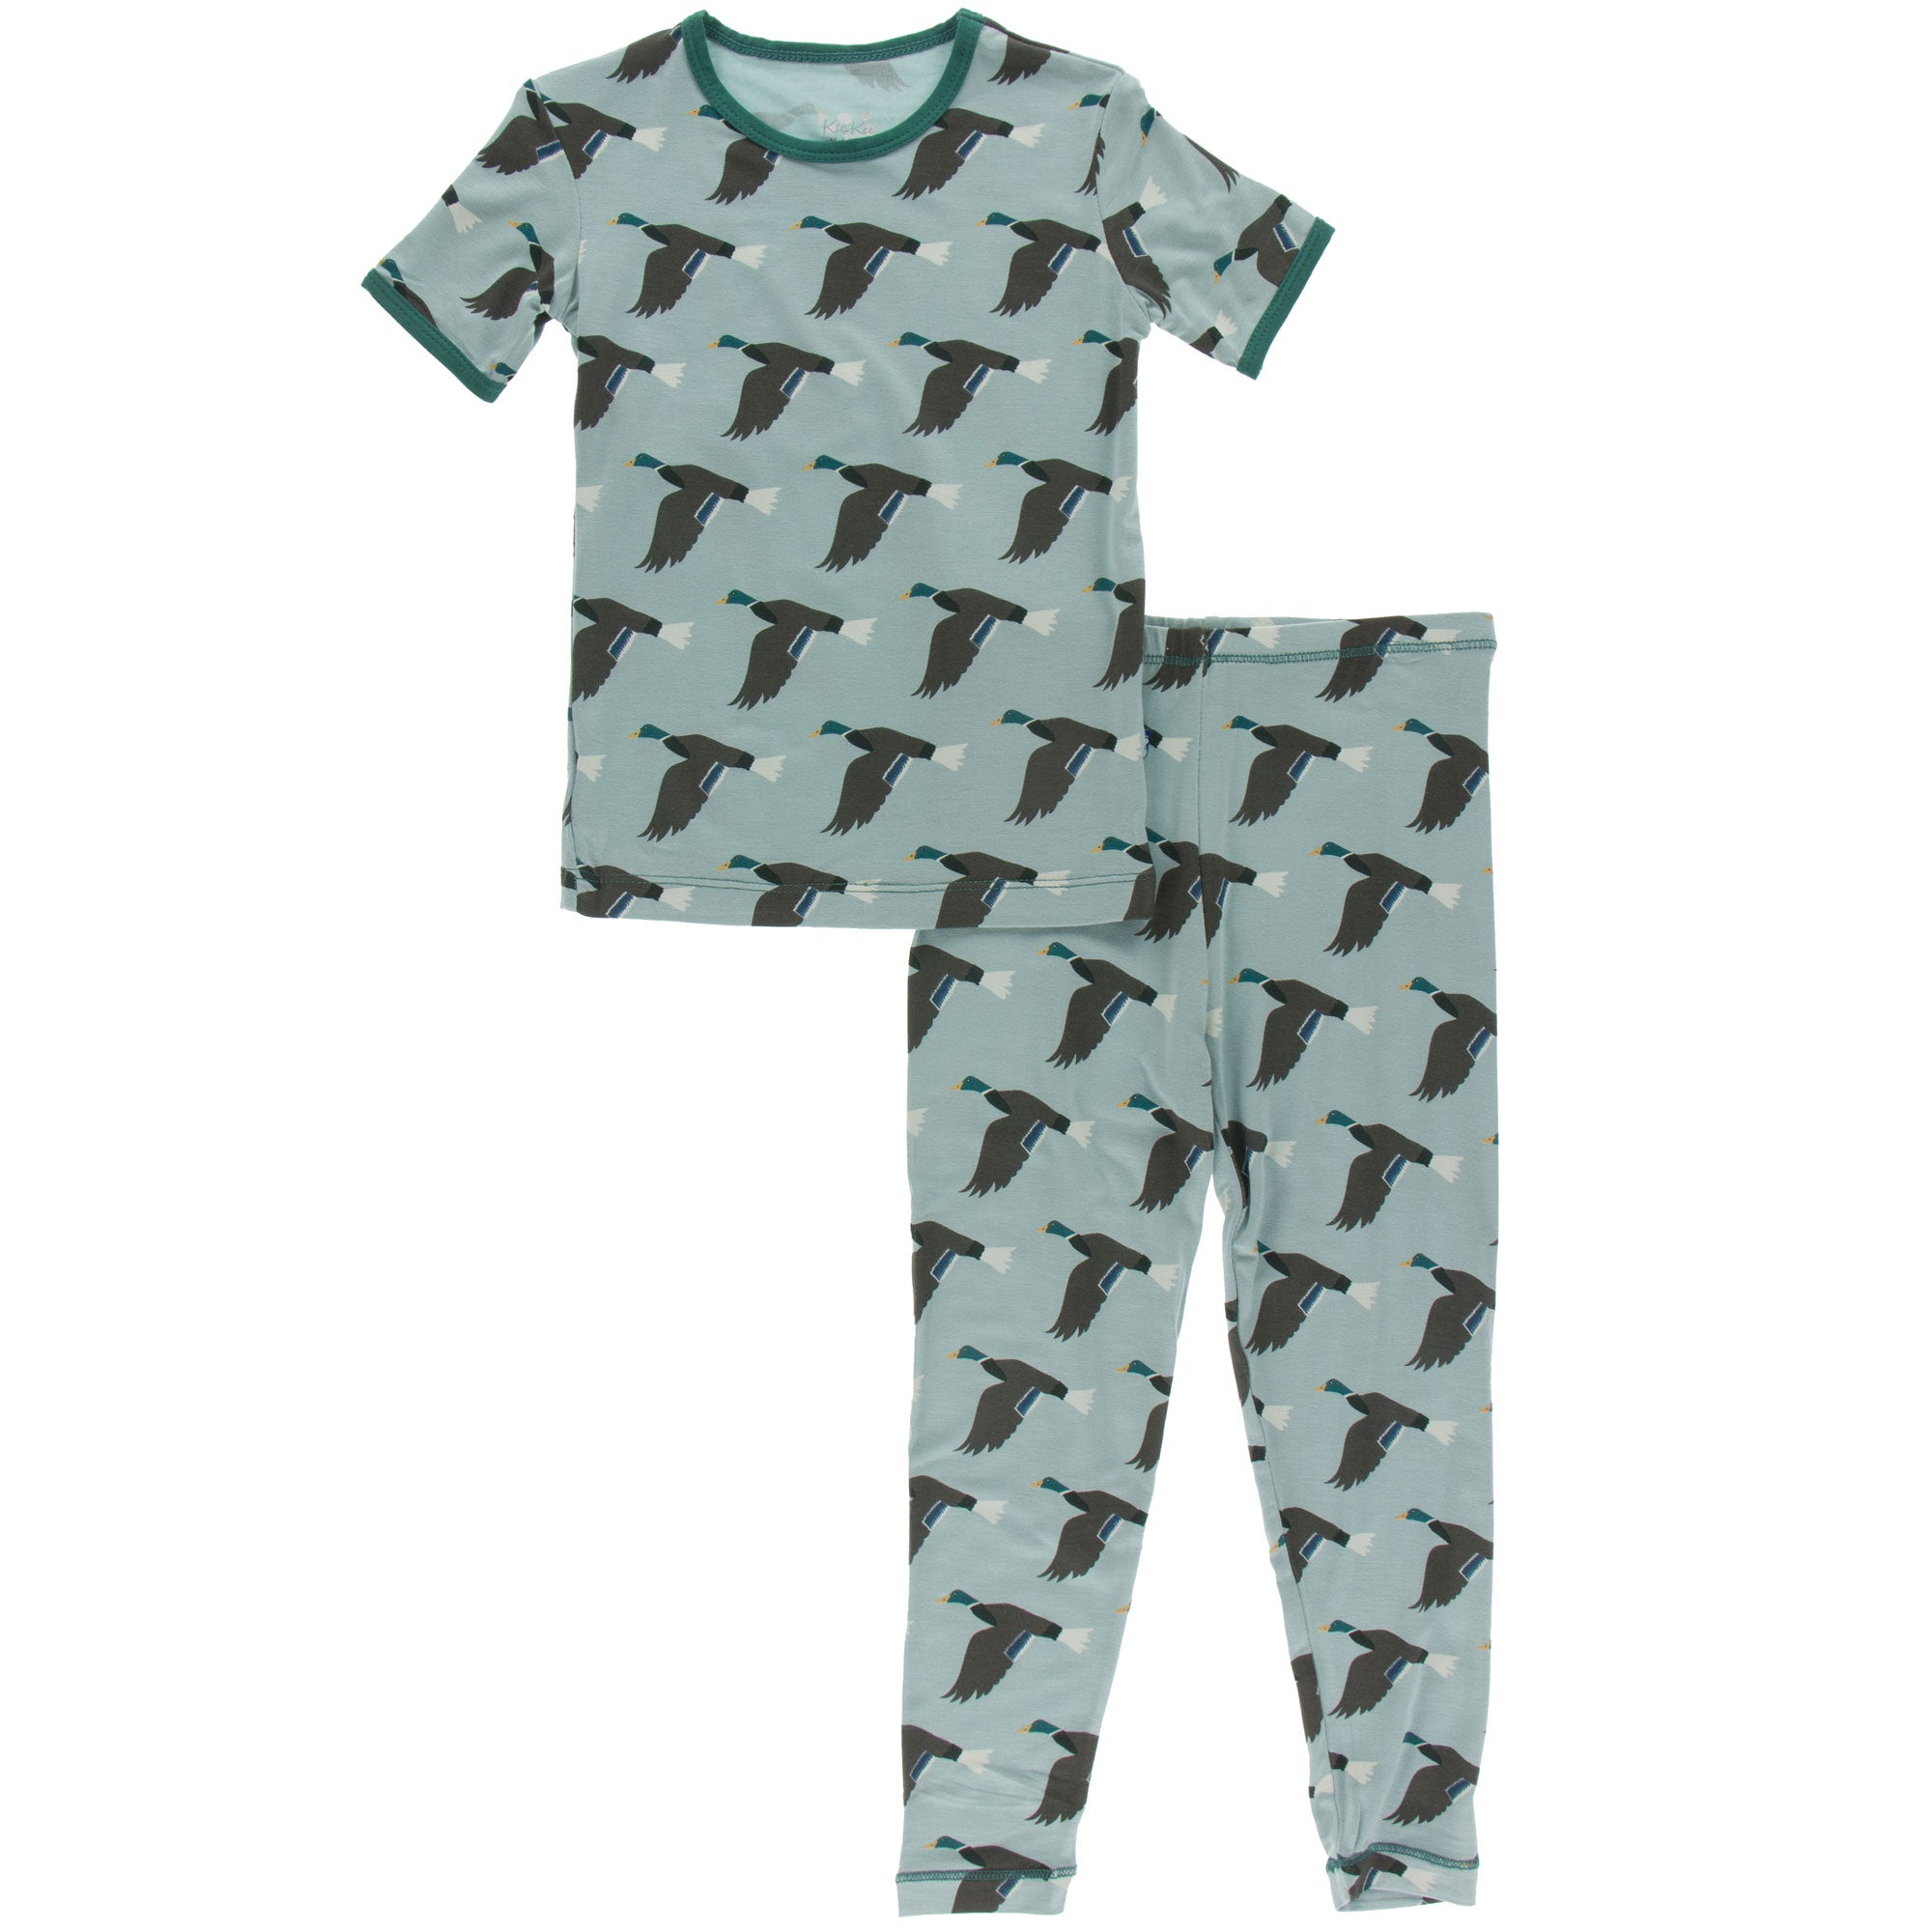 KicKee Pants Short Sleeve Pajama Set - Jade Mallard Duck